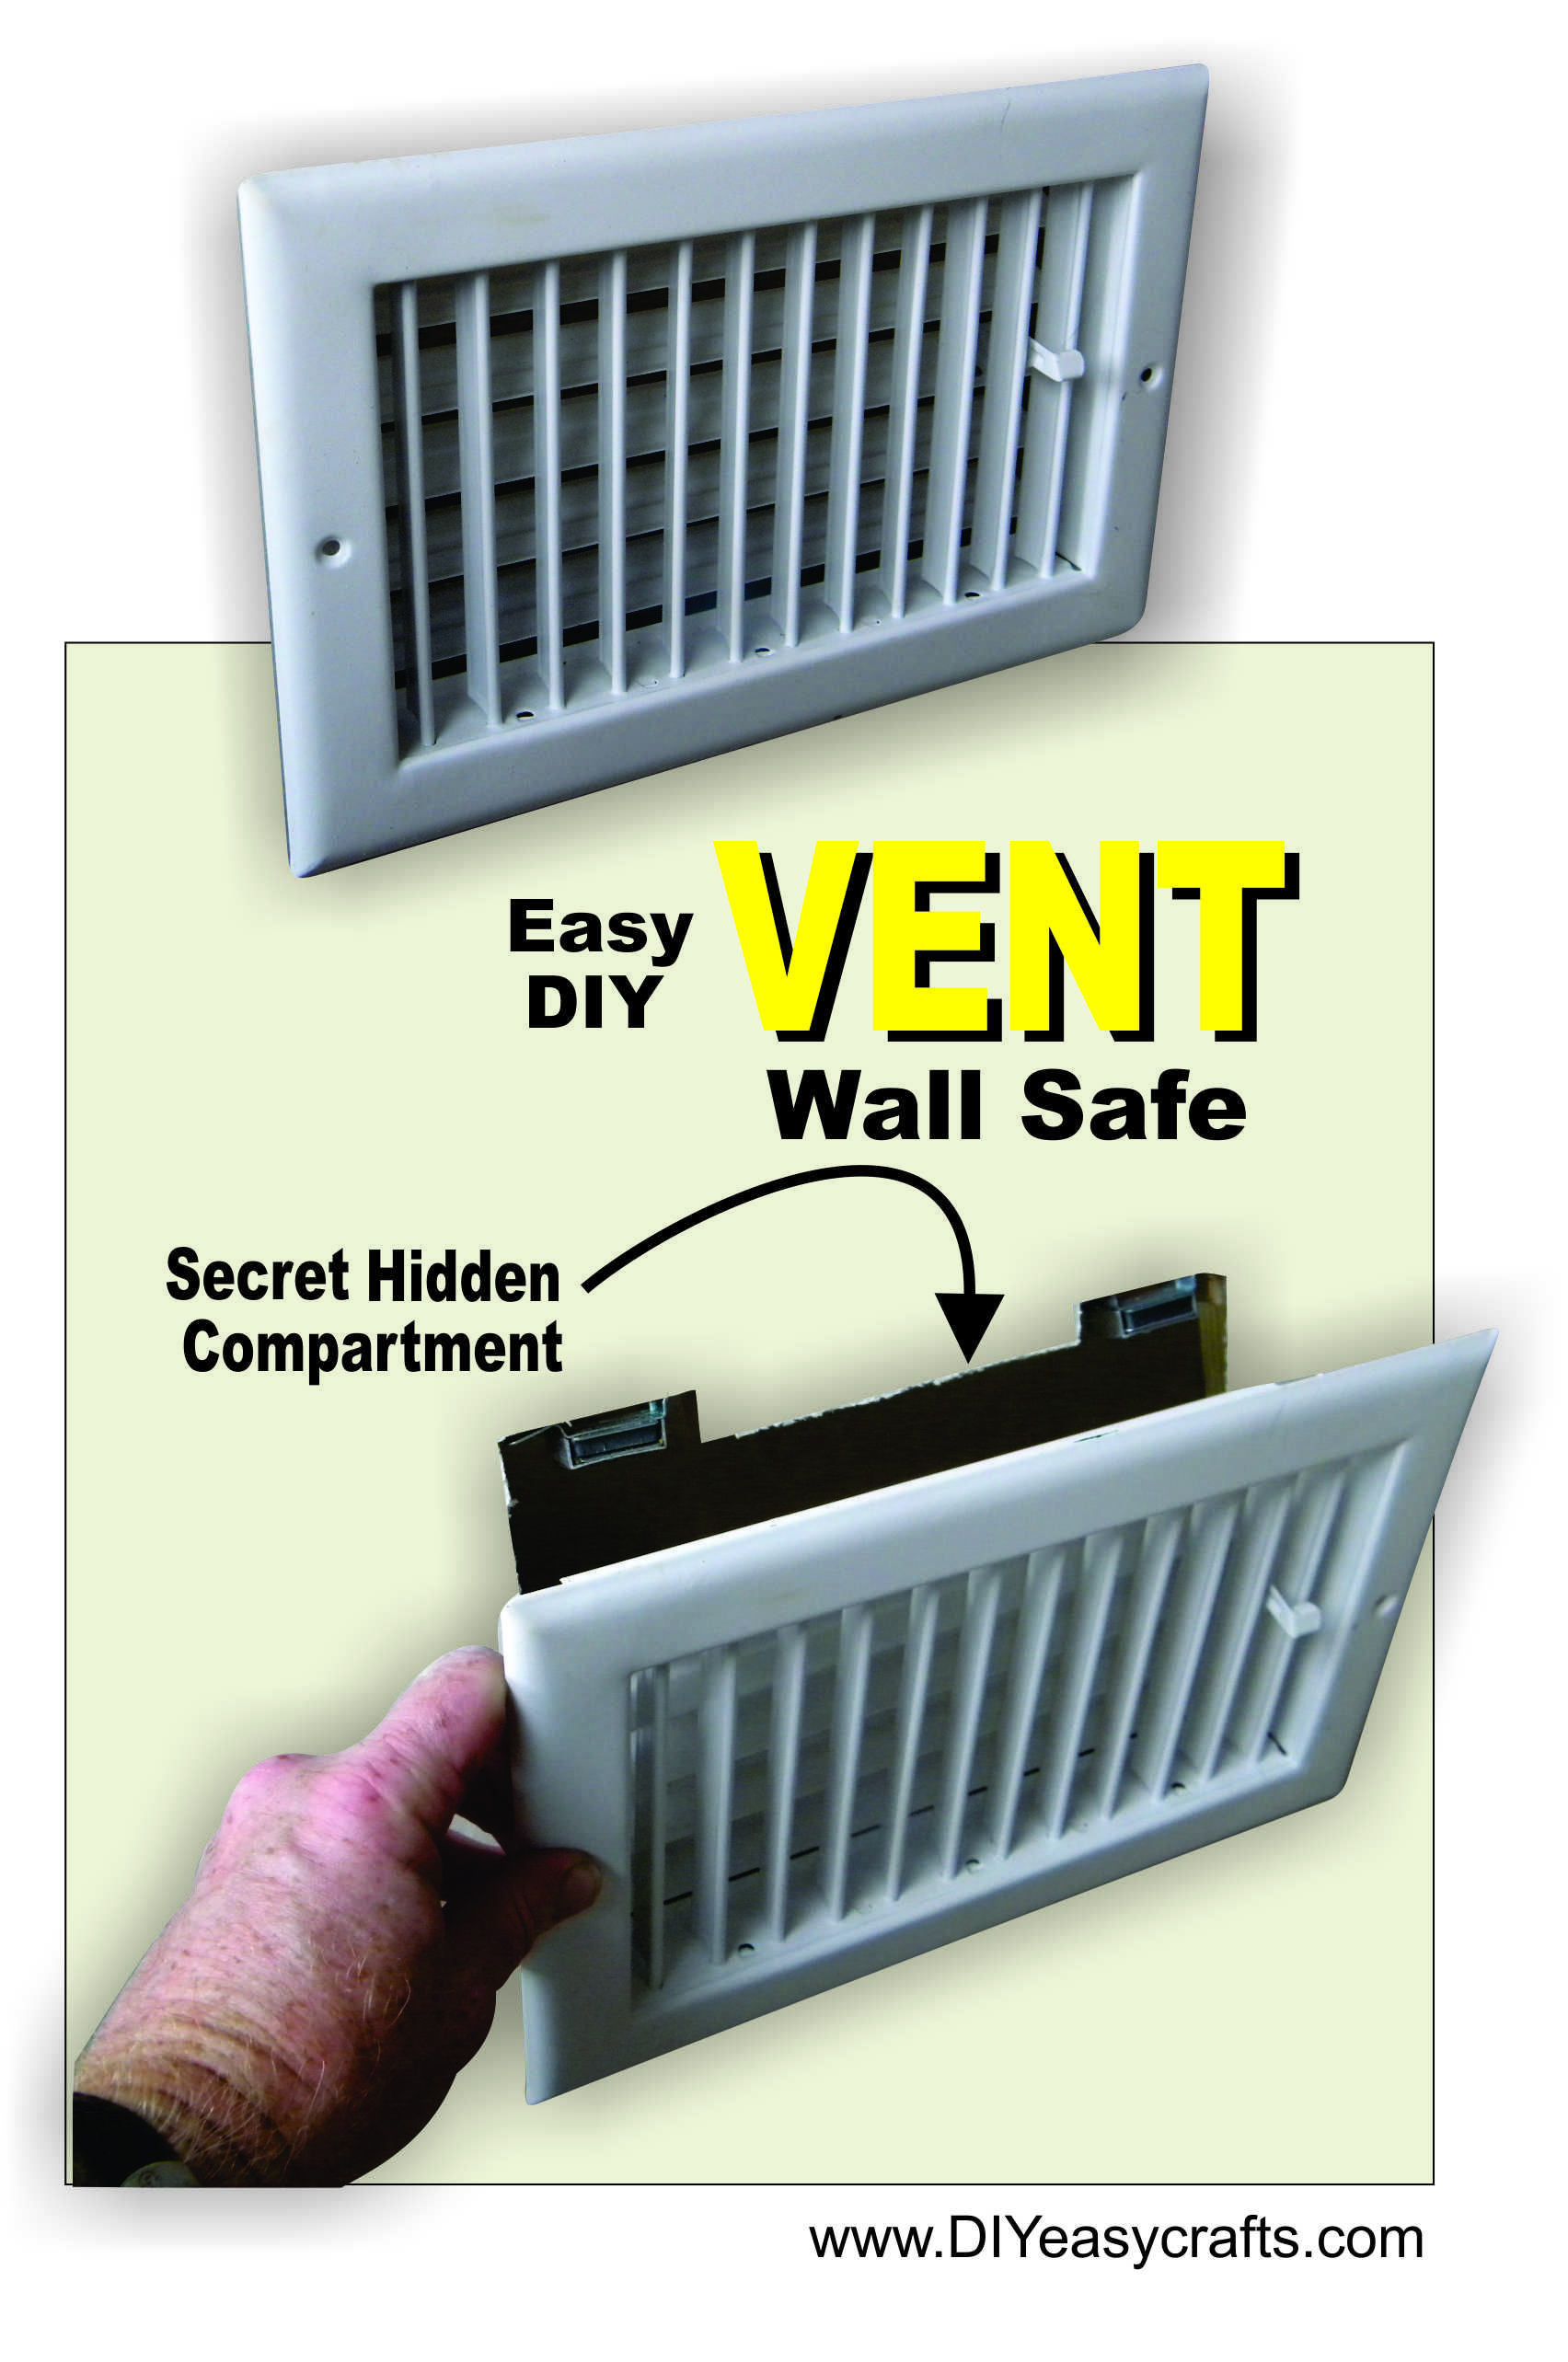 How to make a DIY Air Vent with Secret Compartment Wall Safe. This is an  easy inexpensive way to hide things in plane sight. The Secret Wall safe  could be ...